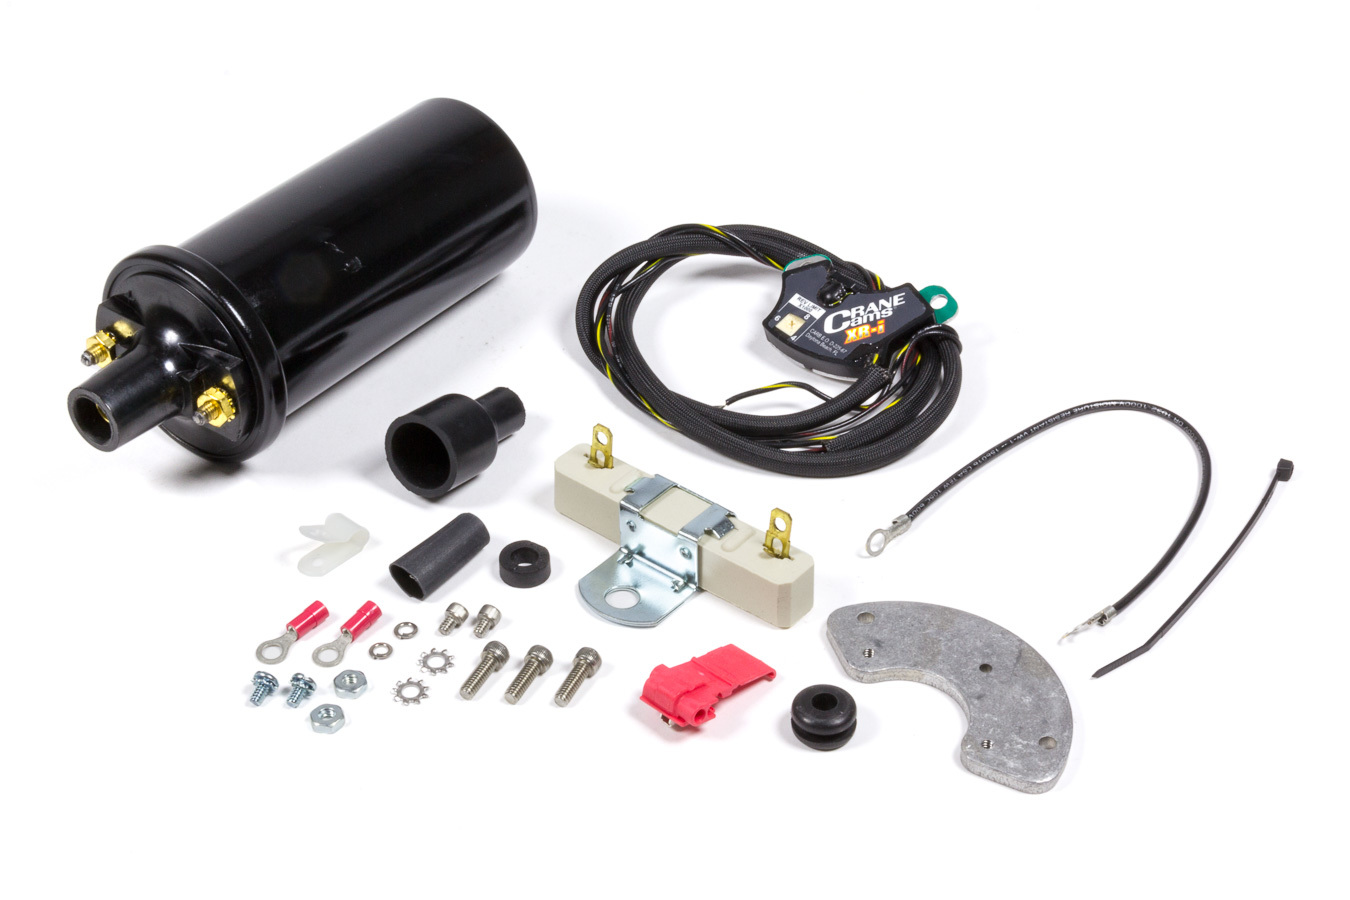 FAST 750-1715 Ignition Conversion Kit, XR-I, Points to Electronic, Distributor Cam Lobe Trigger, Rev Limiter, PS20 Coil, Chevy V8, Kit